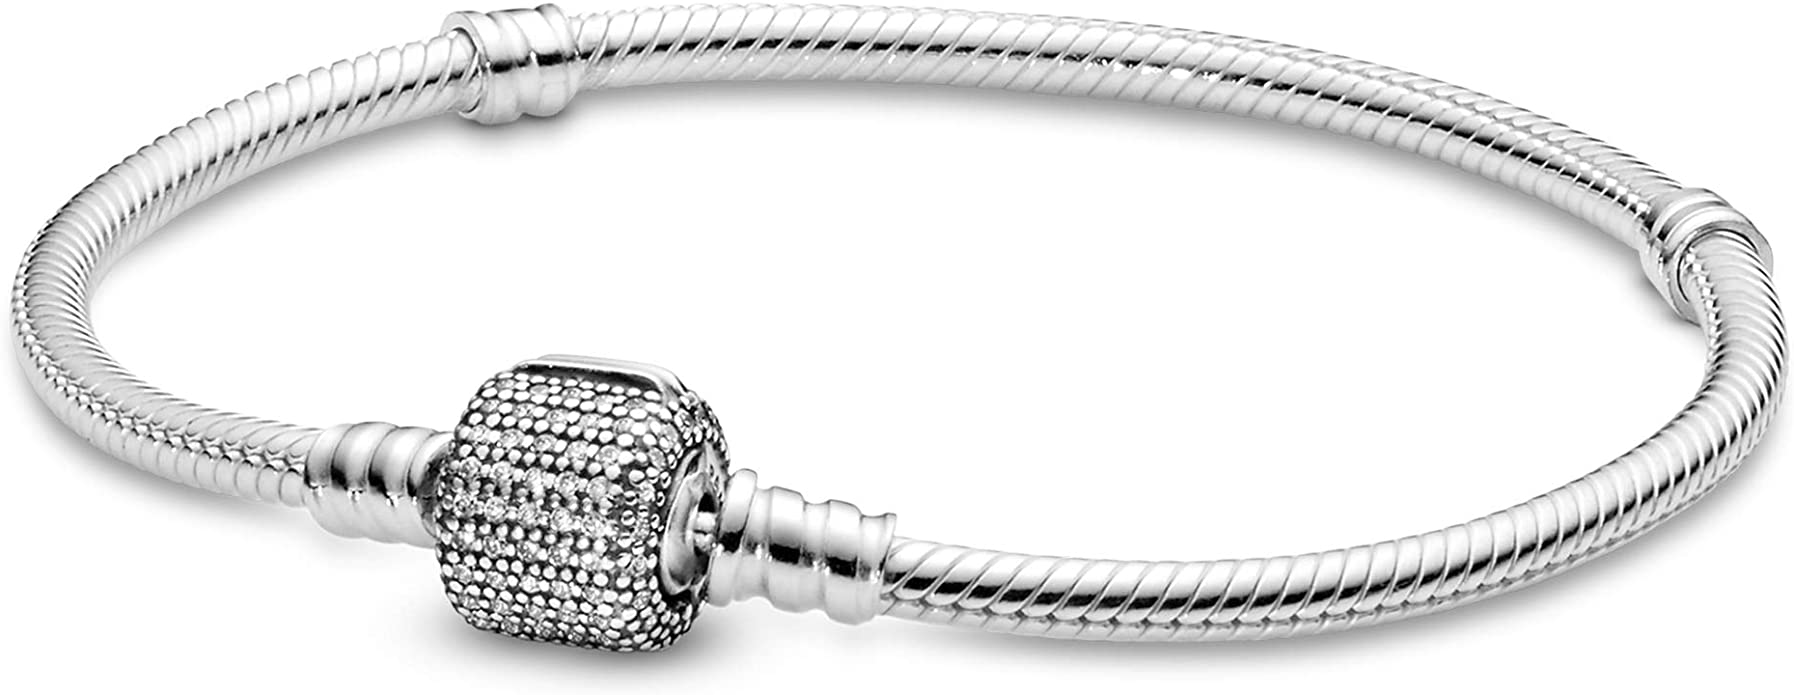 Pandora Jewelry Moments Sparkling Pave Clasp Snake Chain Cubic Zirconia  Bracelet in Sterling Silver